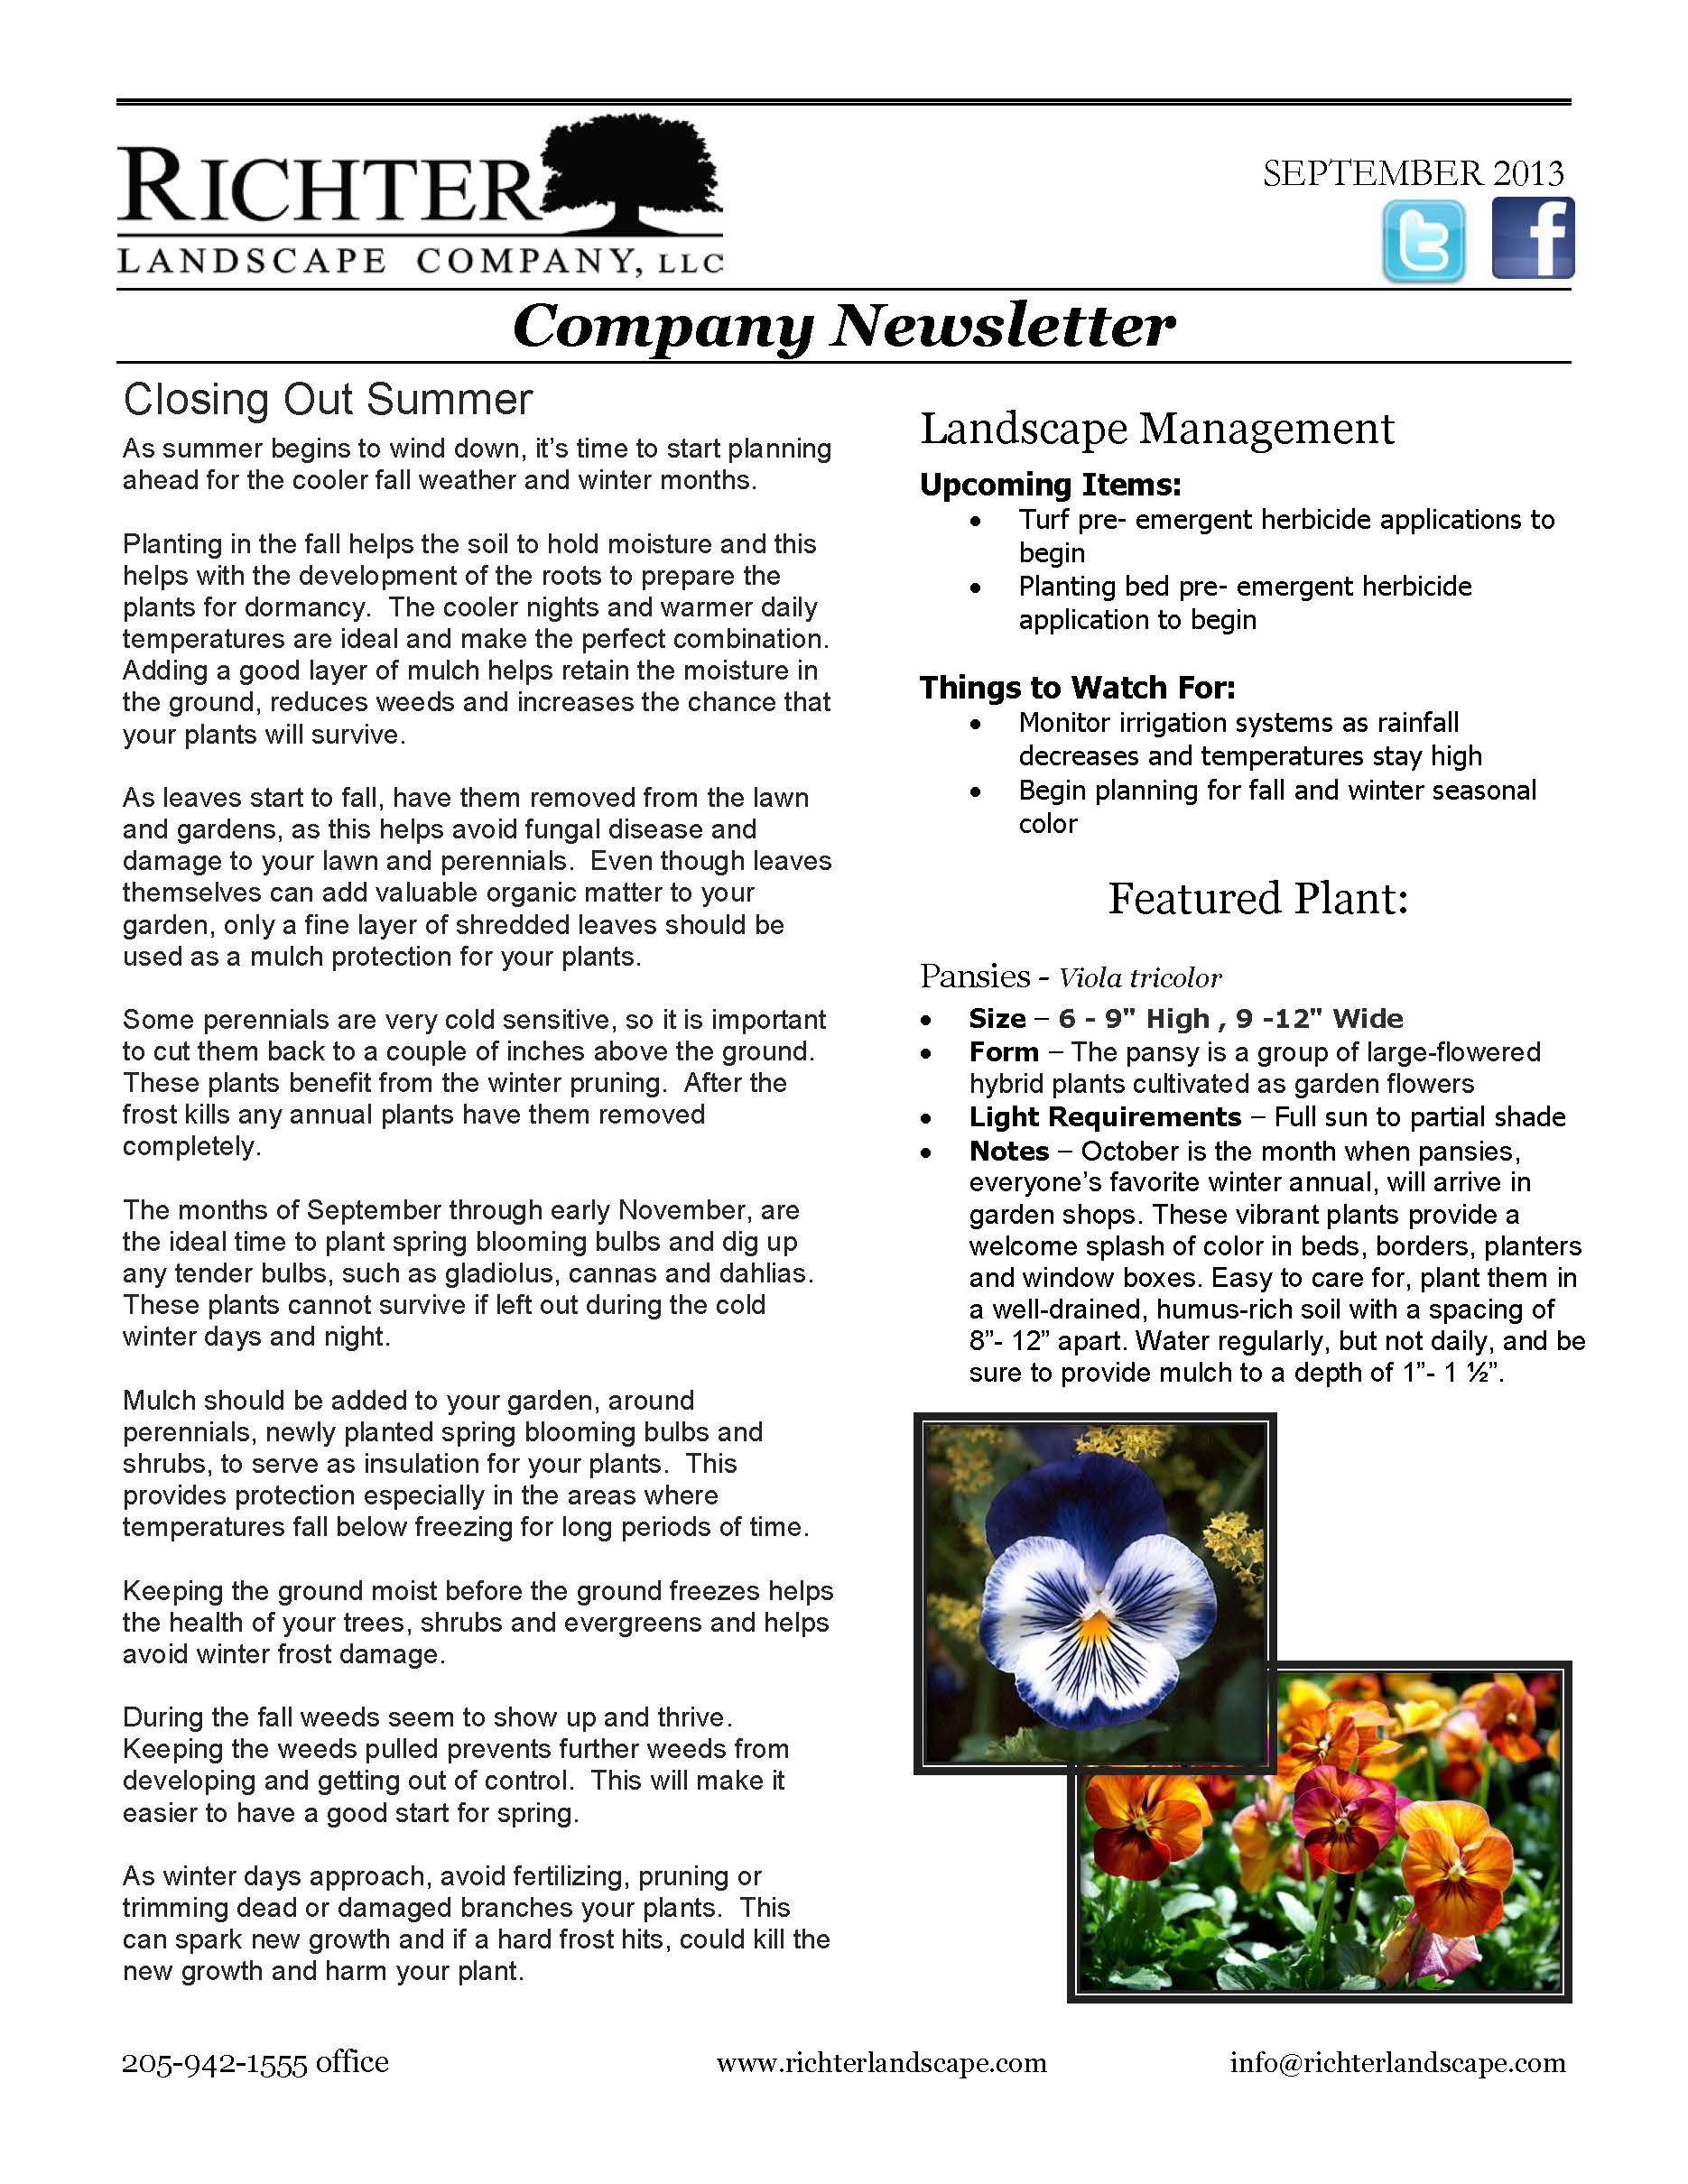 09/13 September Newsletter